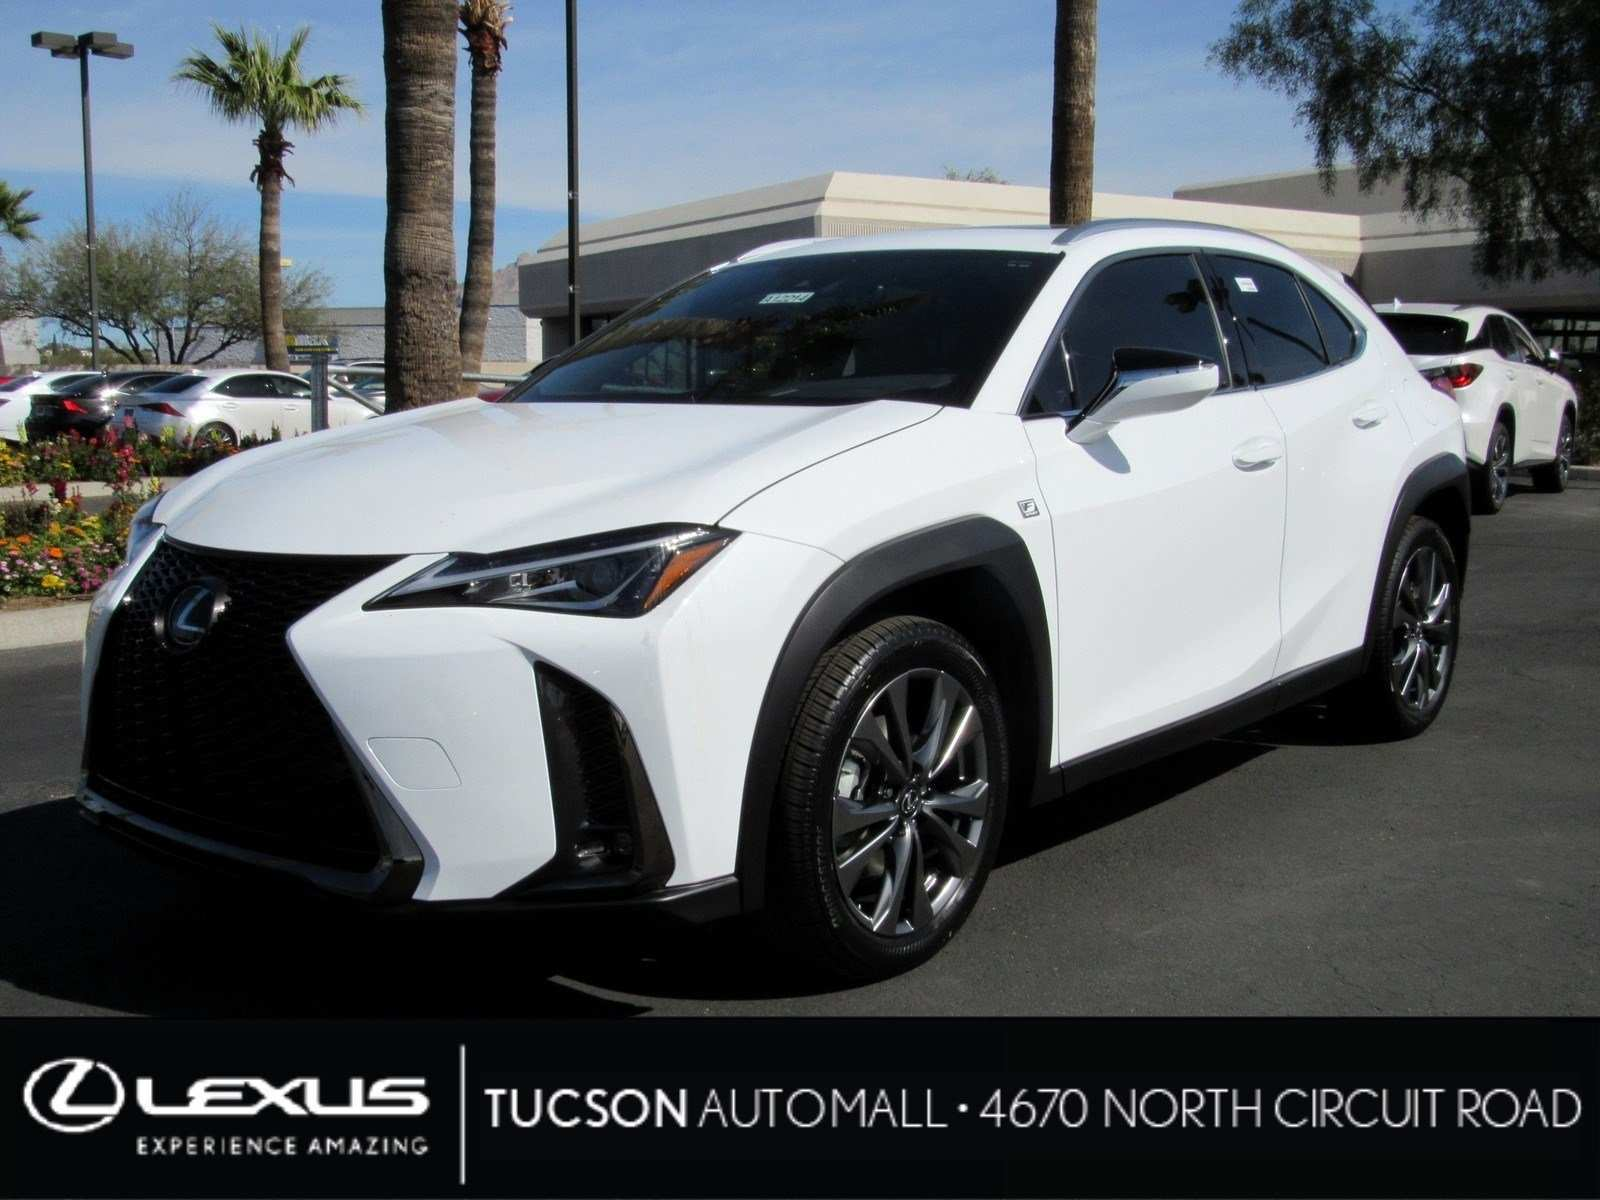 26 New 2019 Lexus Ux200 Price and Review with 2019 Lexus Ux200